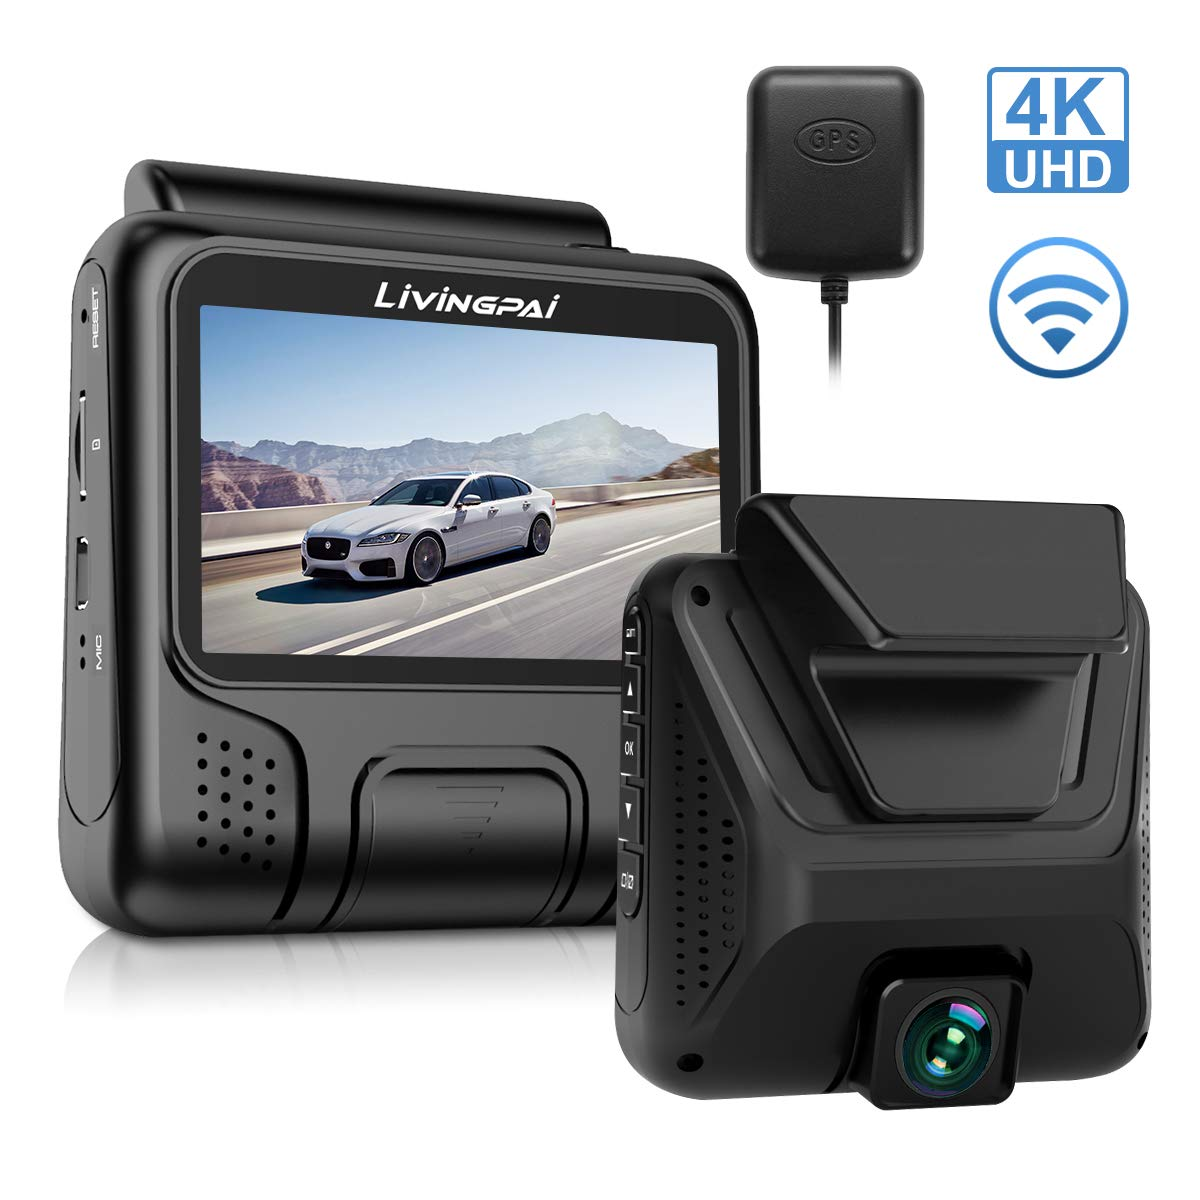 4K Dash Cam 2880 x 2160P UHD Car Camera with WiFi GPS Dash Camera for Cars Driving Recorder with 3 Inch LCD Screen 170°Wide Angle G-Sensor, WDR, Parking Monitor, Loop Recording, Motion Detection by LiviNGPAI